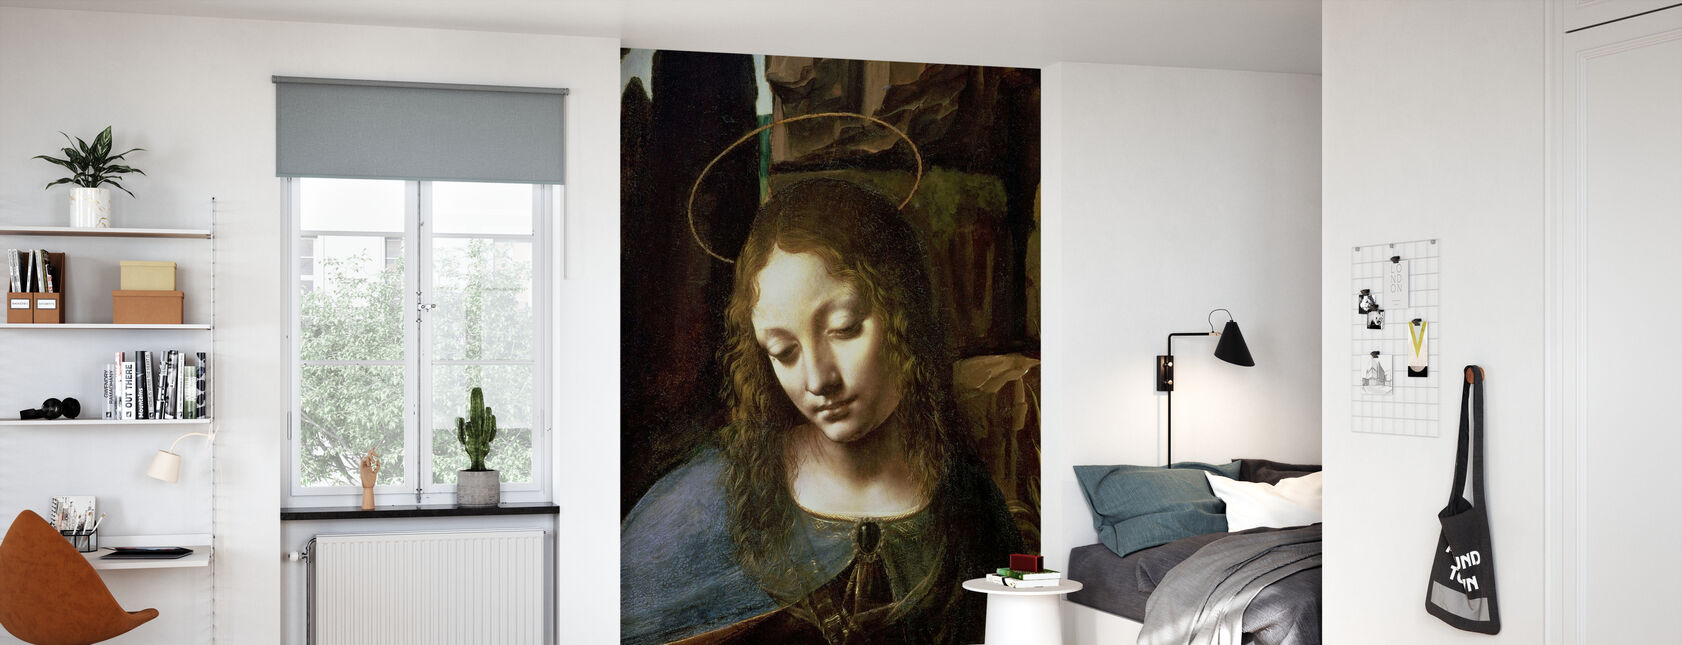 Virgin of the Rocks - Leonardo da Vinci - Wallpaper - Kids Room